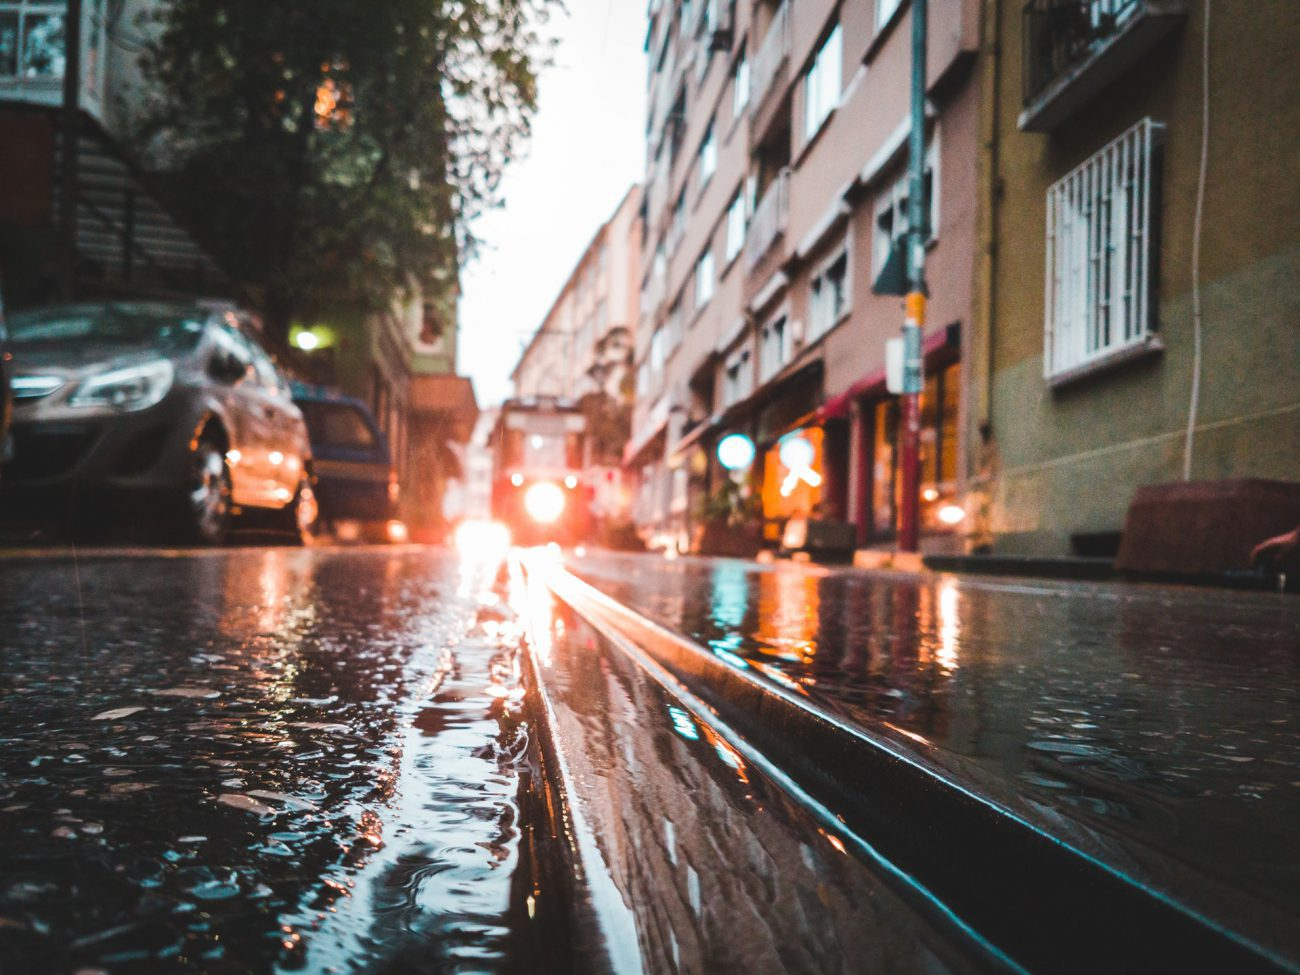 Home Insurance and Flooding, Climate Change and Increased Risk